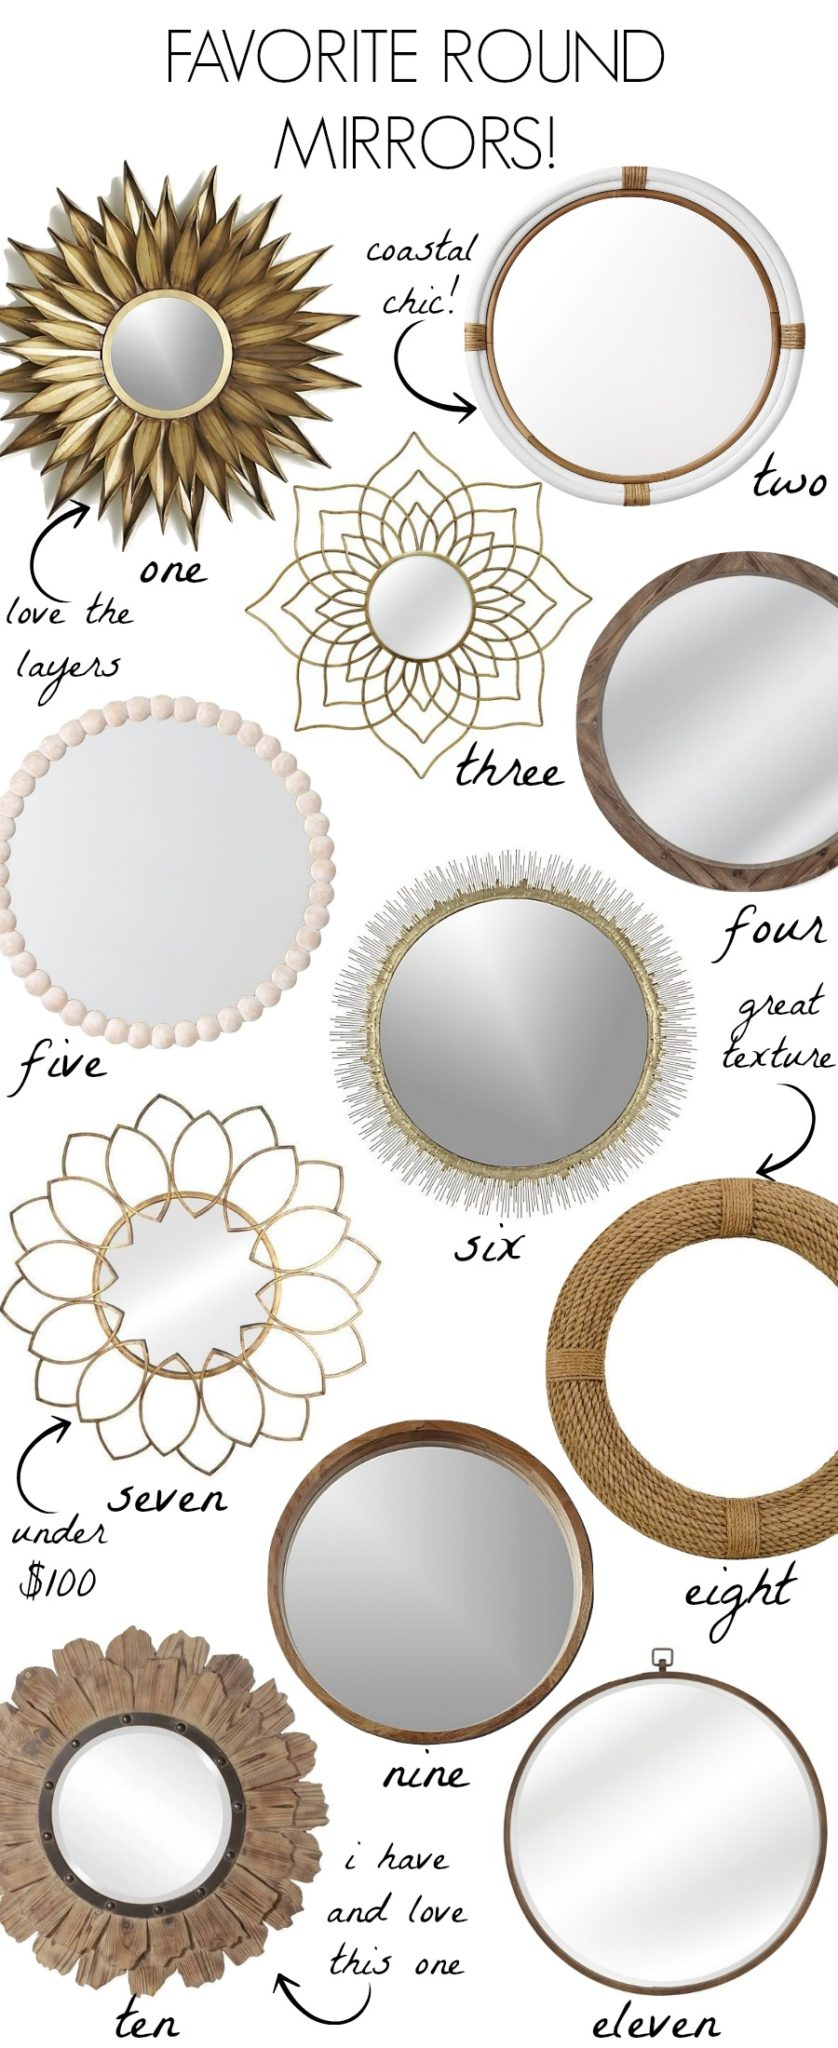 Loving these gorgeous round mirrors! Large round mirrors, wood mirrors, gold mirrors... so many beautiful options!